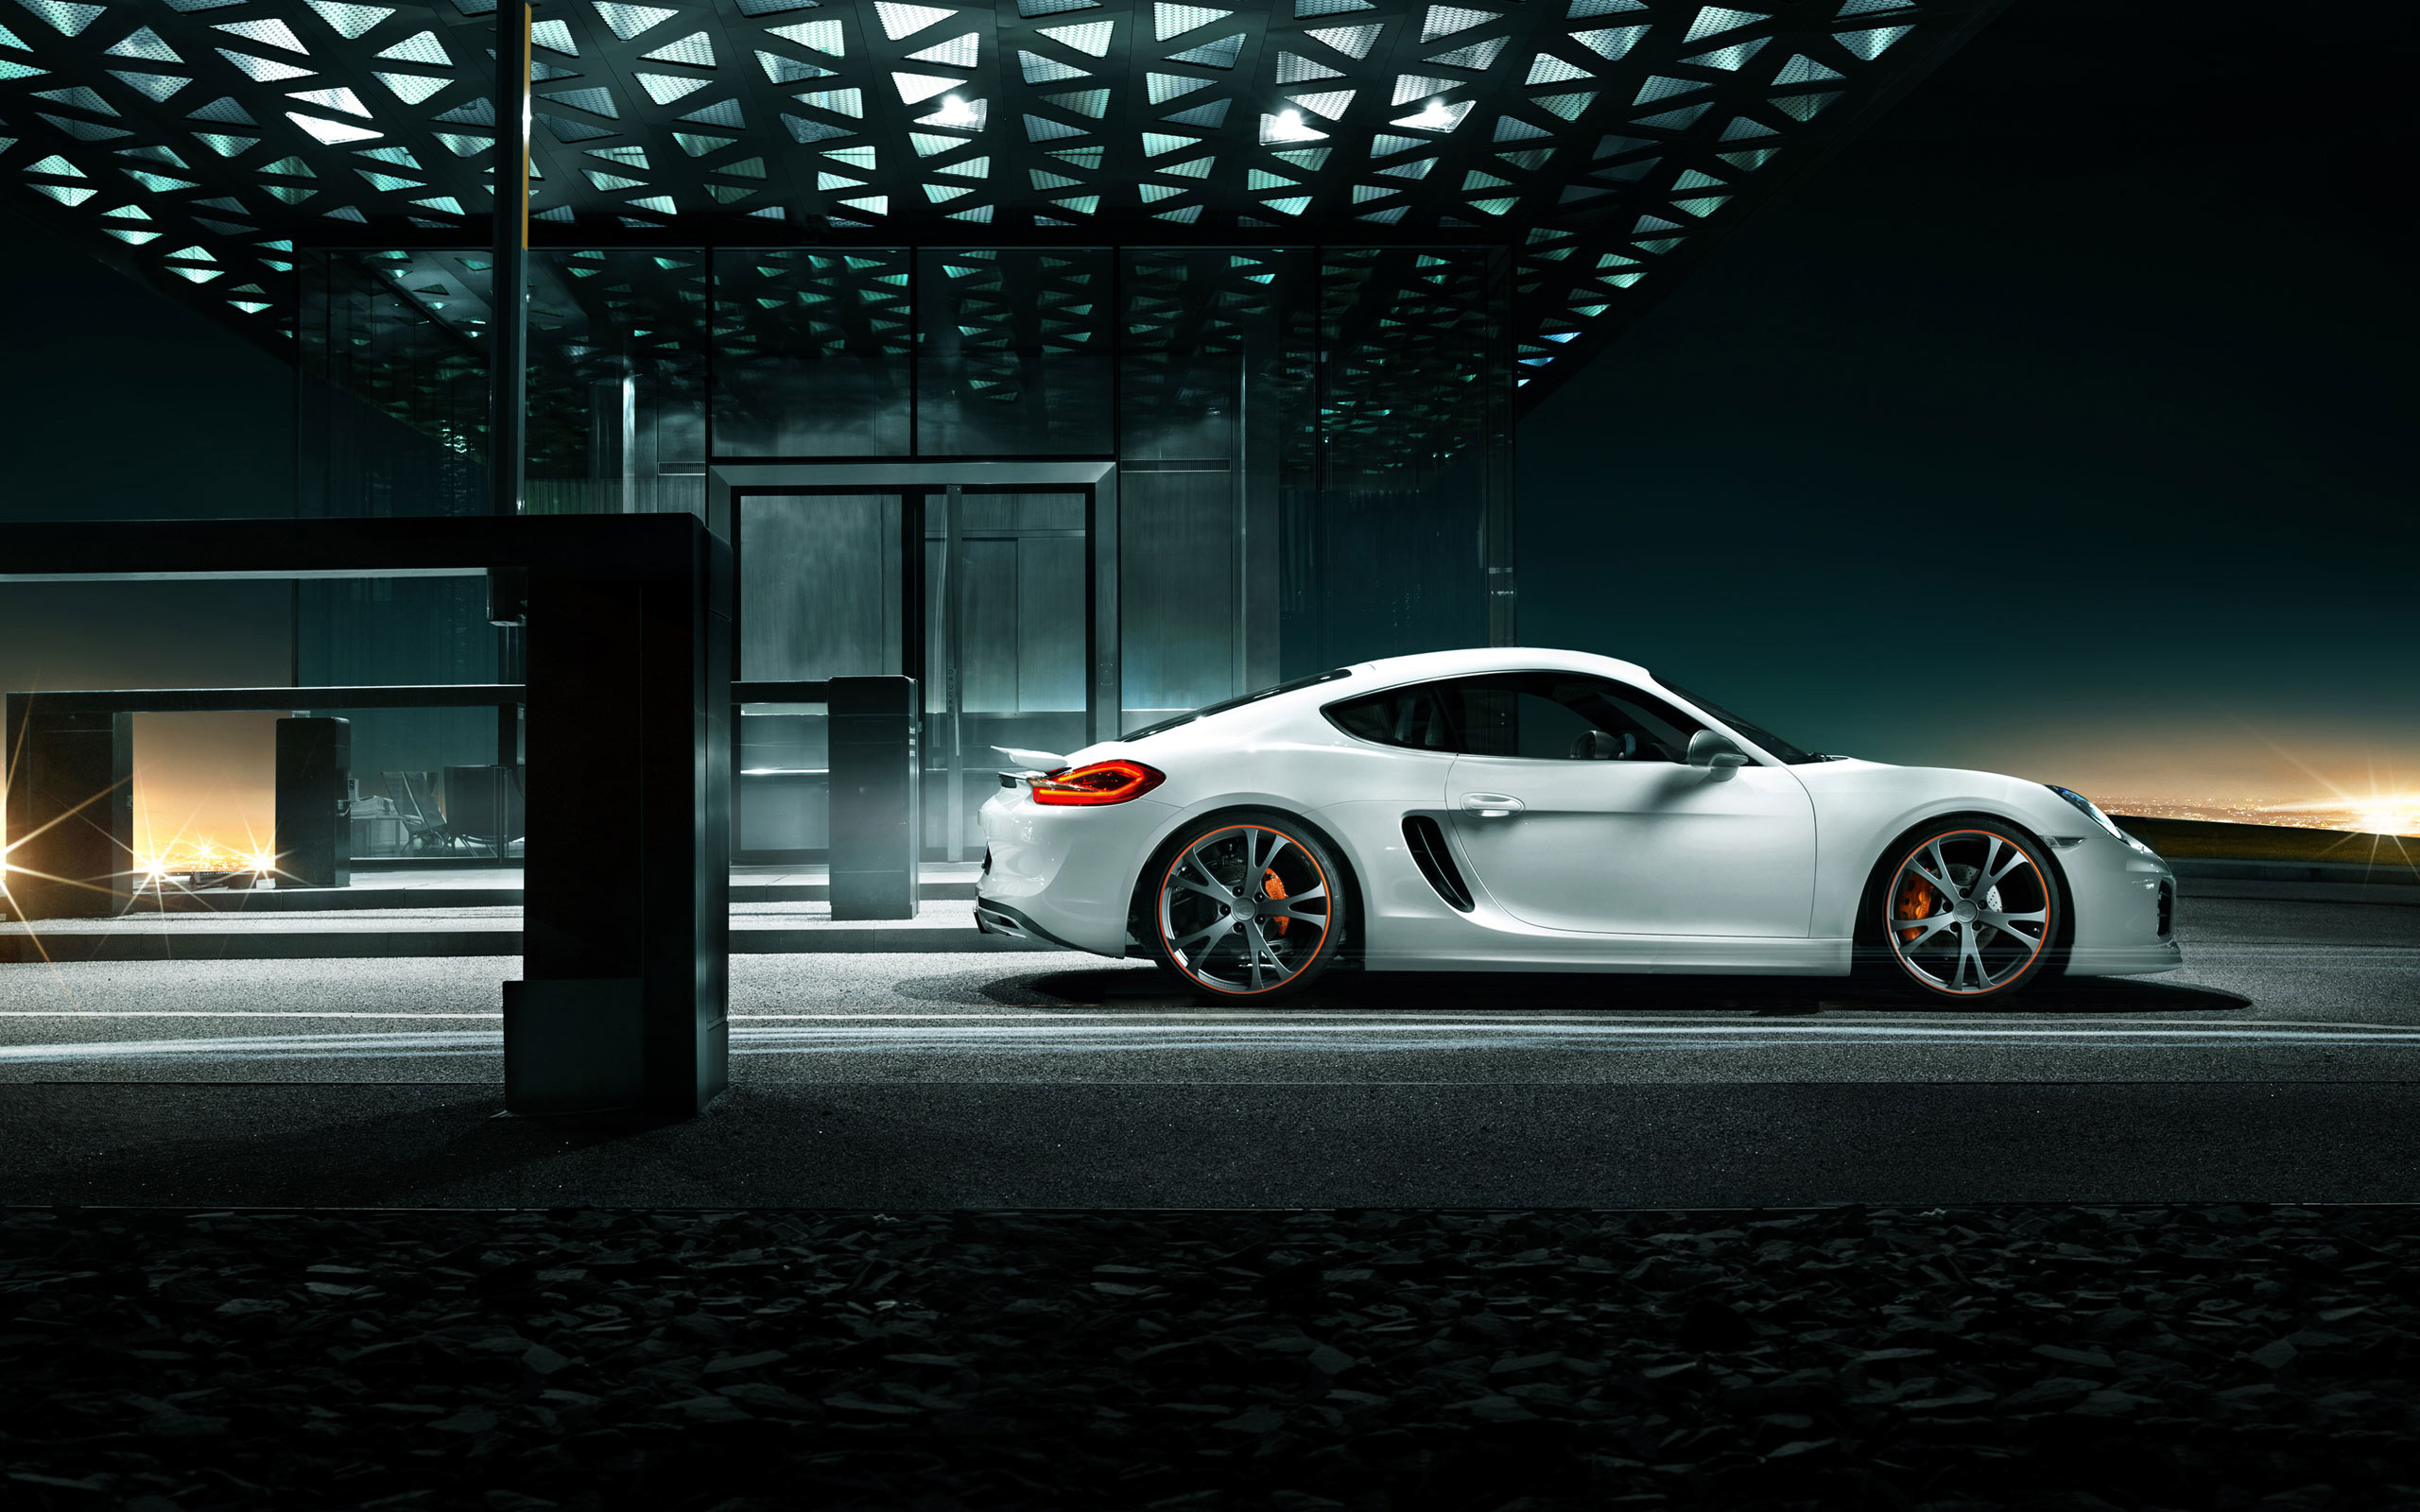 2013 Porsche Cayman by Techart 2 Wallpaper | HD Car Wallpapers